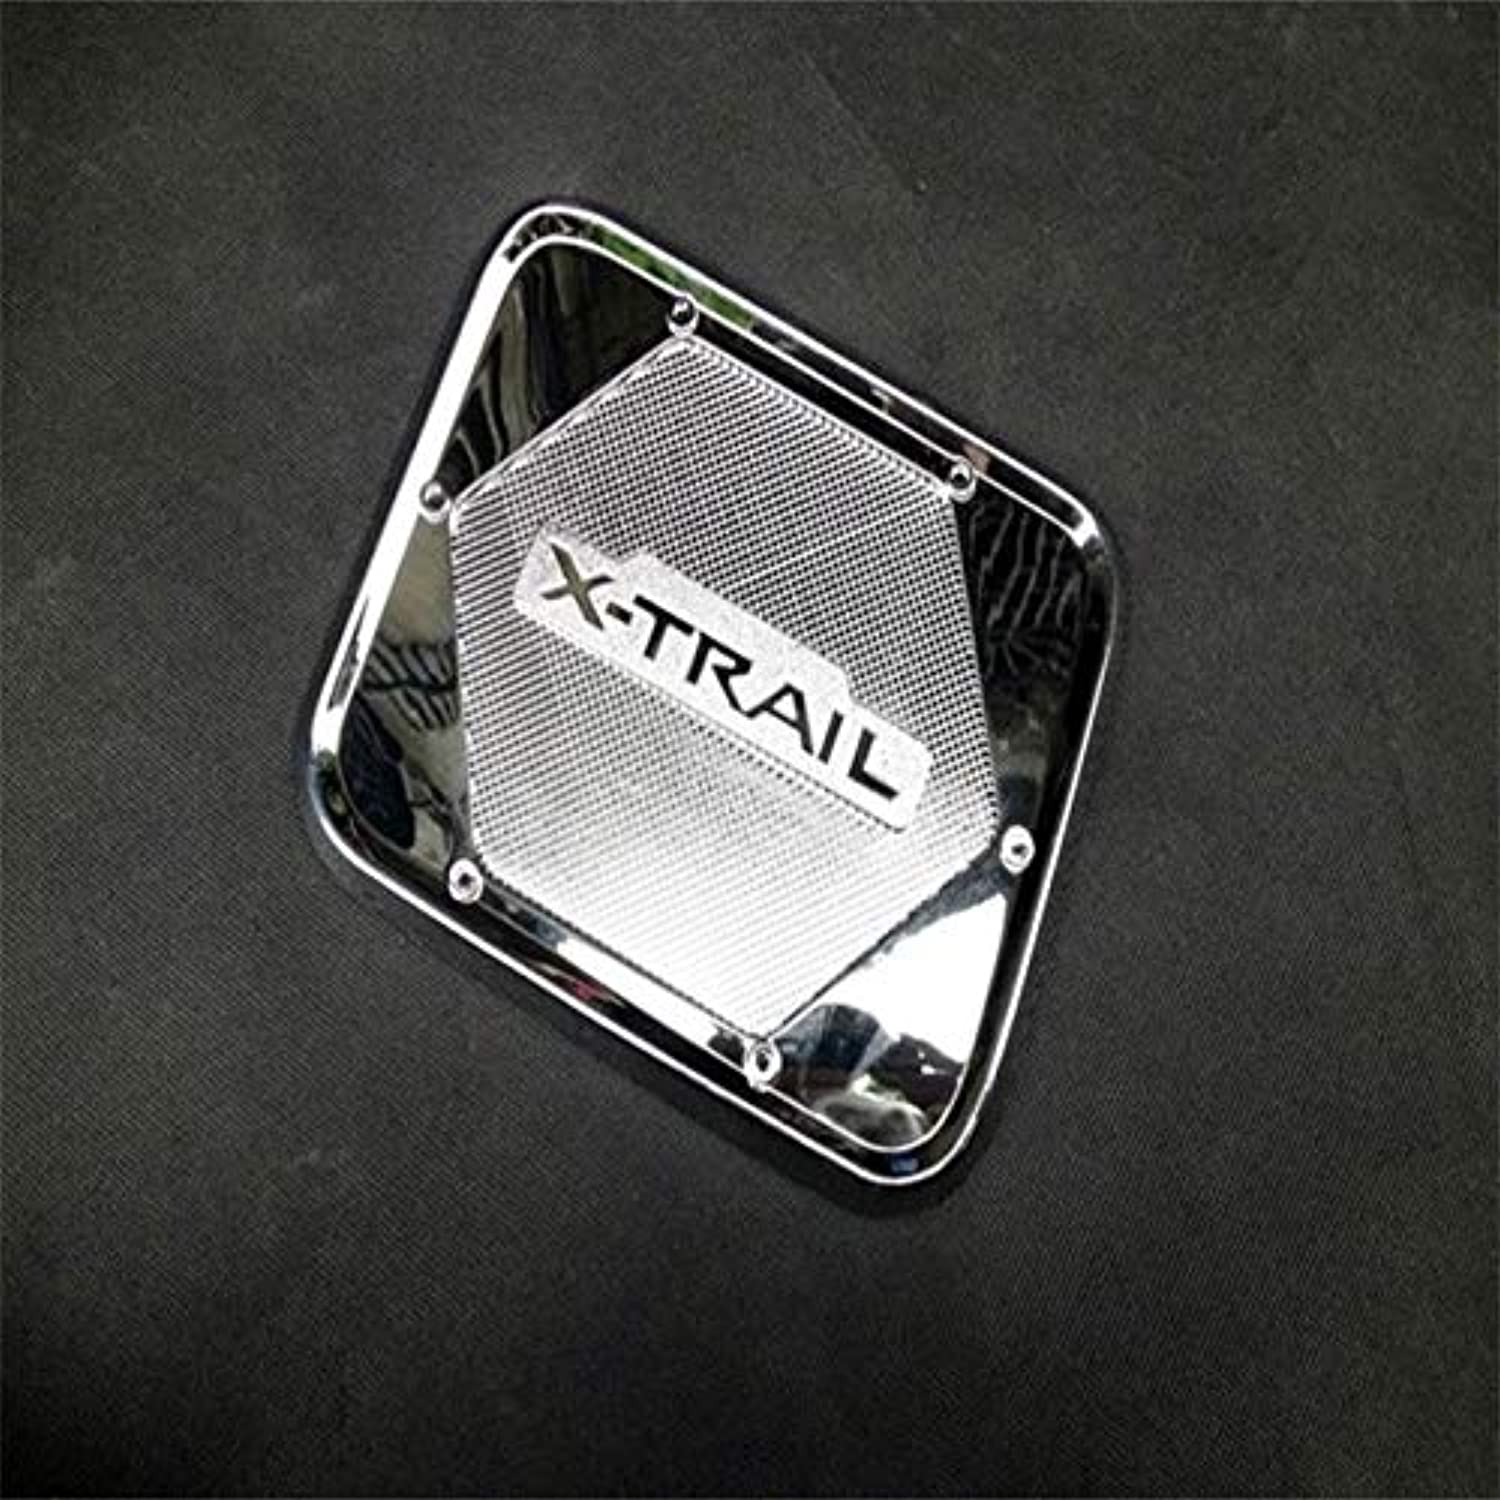 For Nissan Xtrail XTrail X Trail 2014 2015 2016 ABS Chrome Sticker Cover Tank Cover Styling Acessories  (color Name  Black)